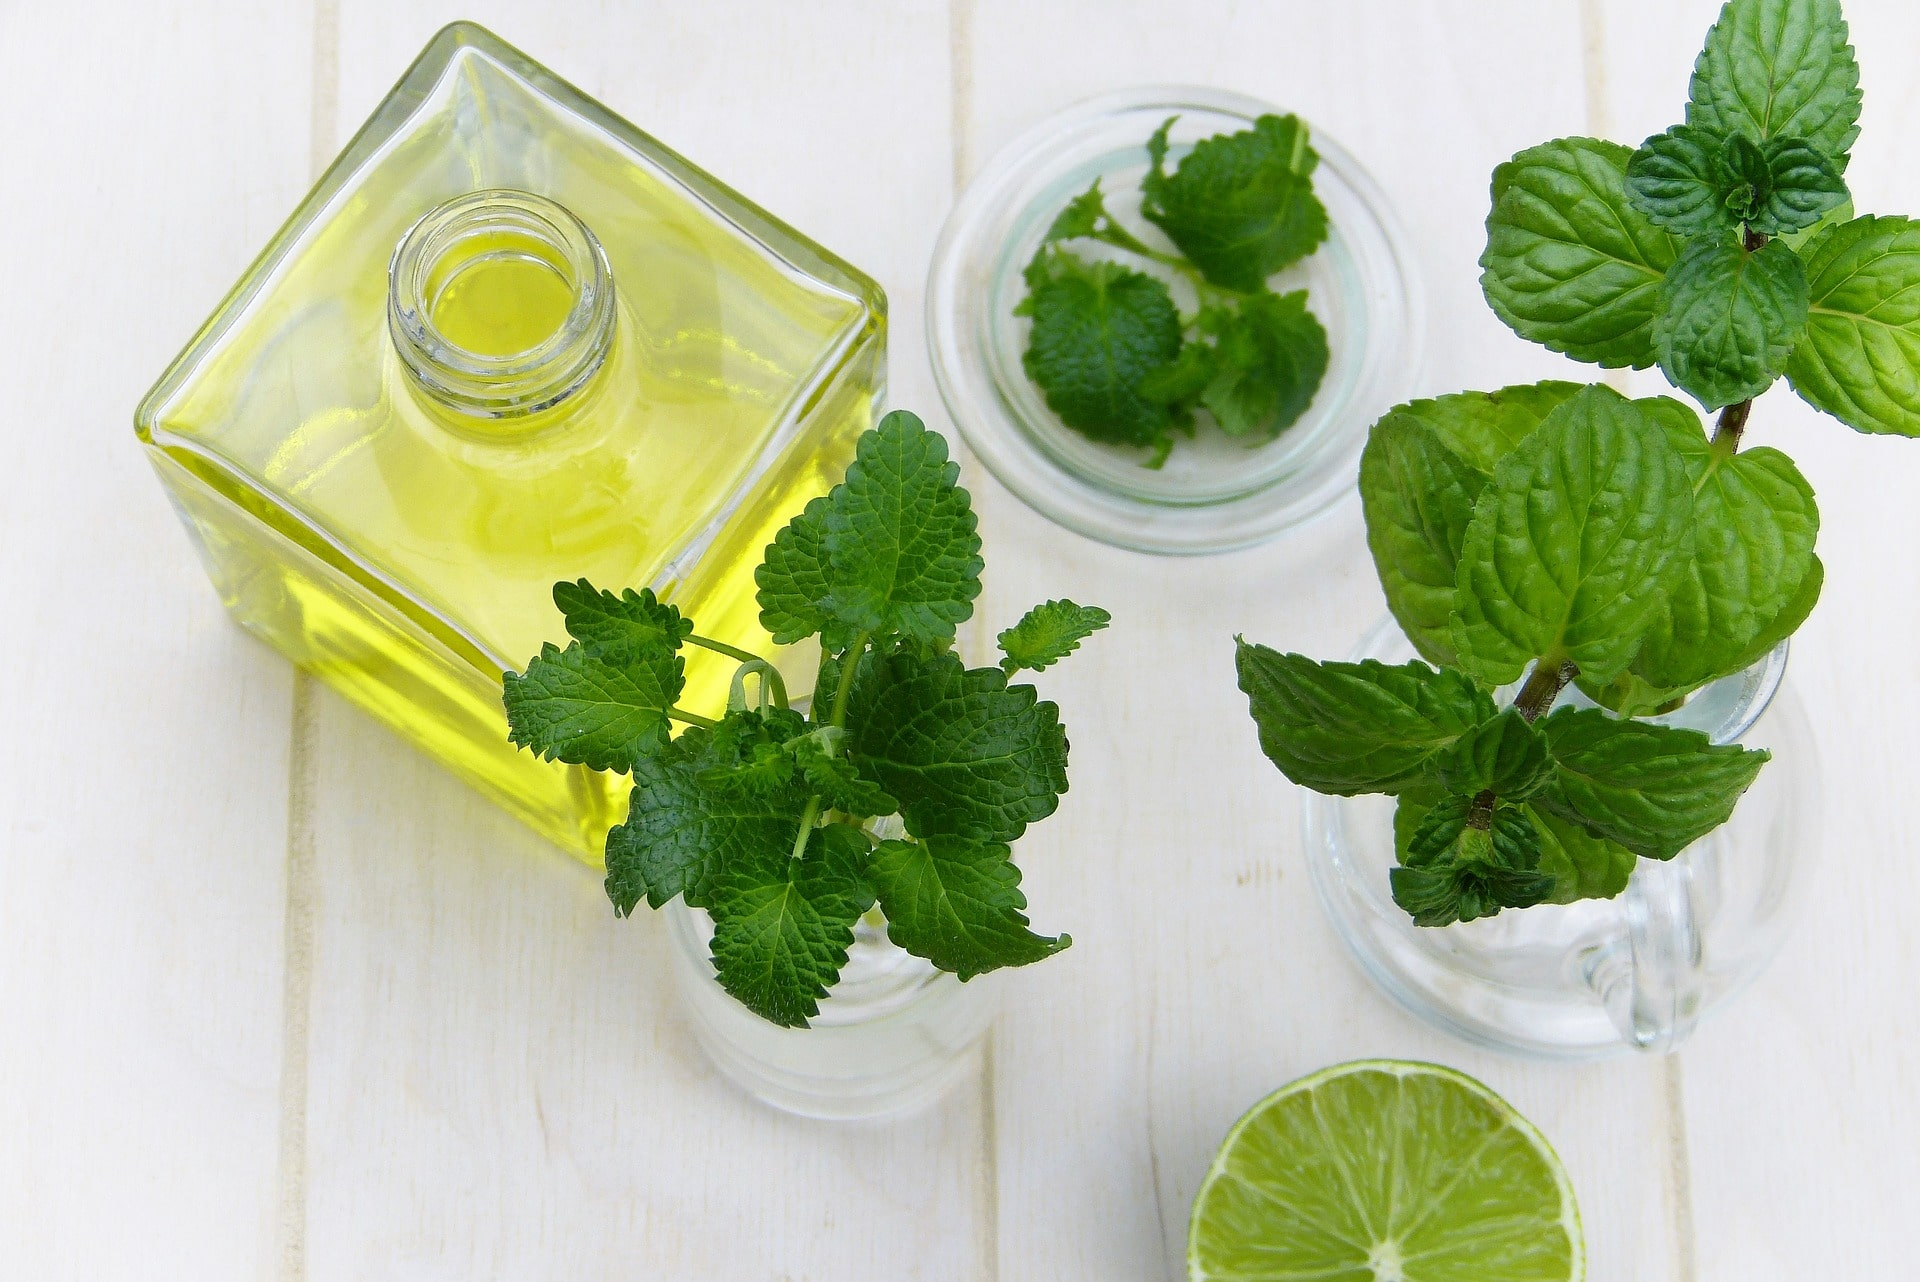 Mint Leaves Benefits For Skin